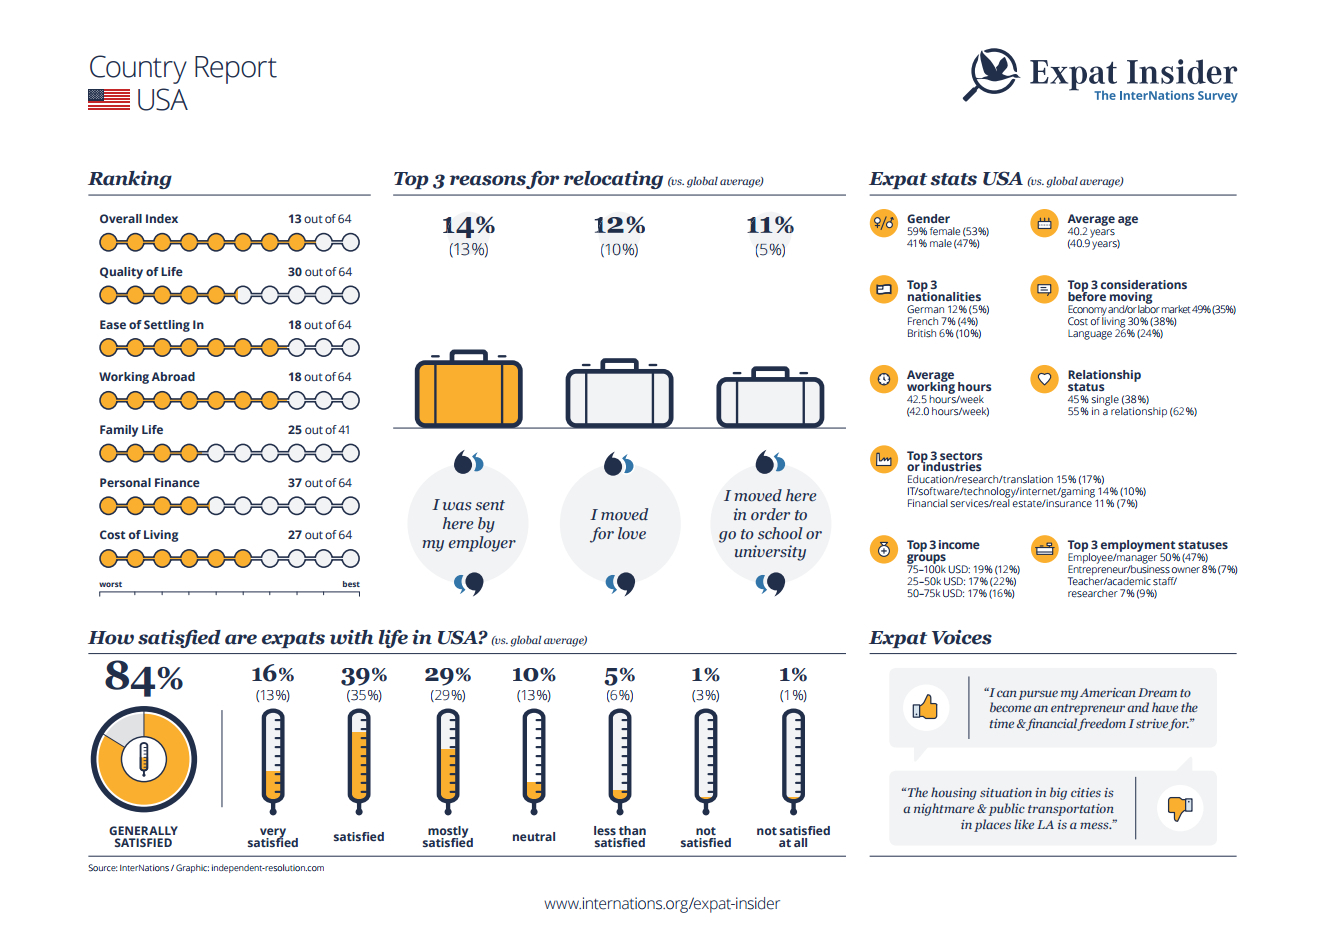 Expat statistics for the USA - infographic